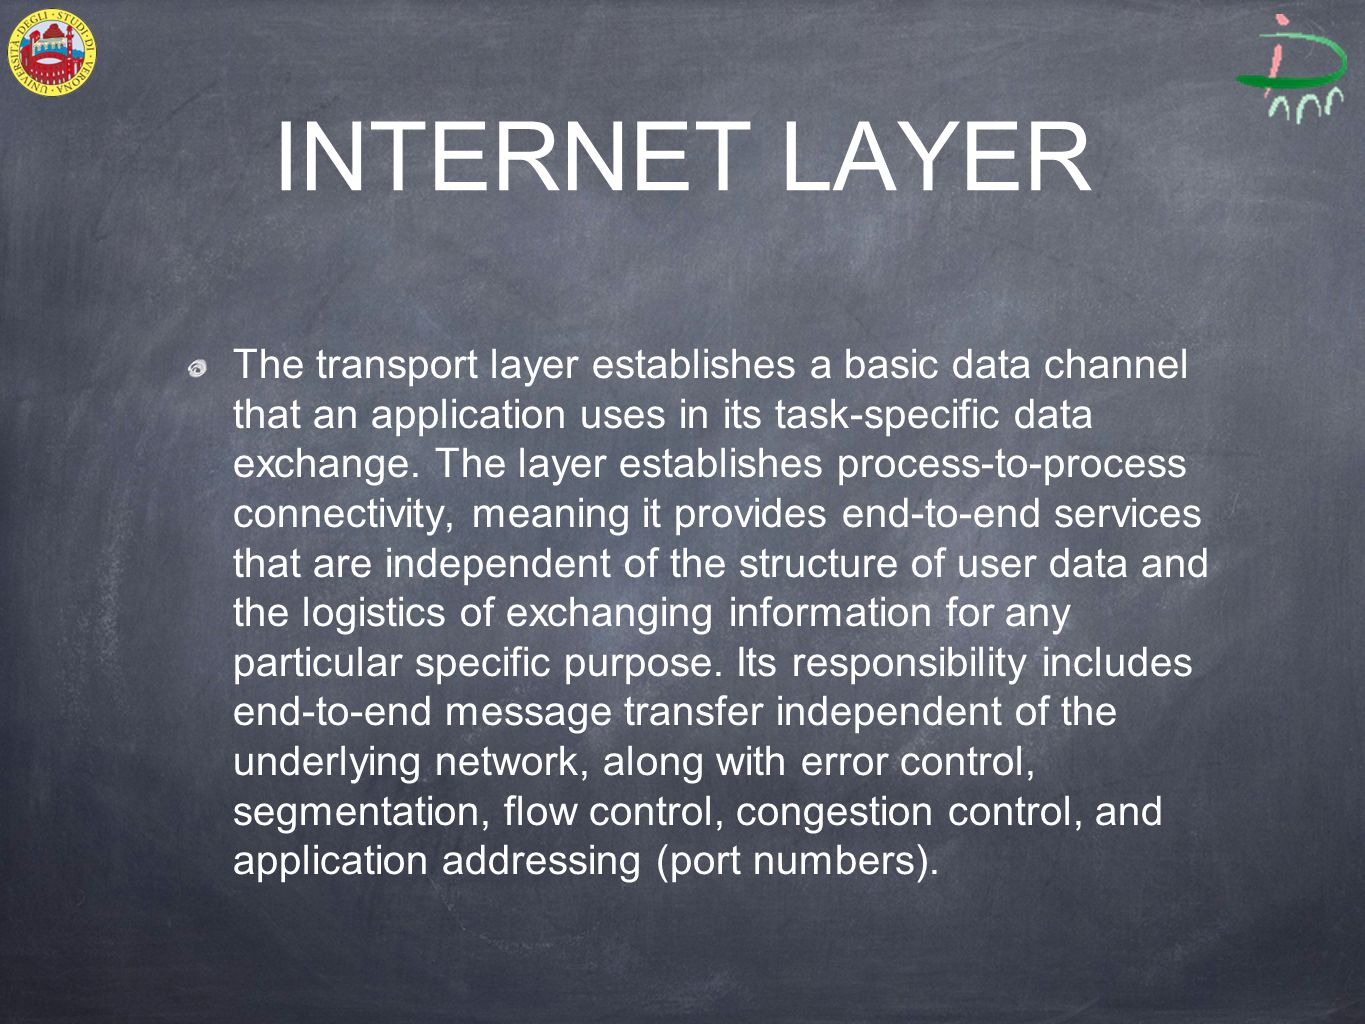 INTERNET LAYER The transport layer establishes a basic data channel that an application uses in its task-specific data exchange.